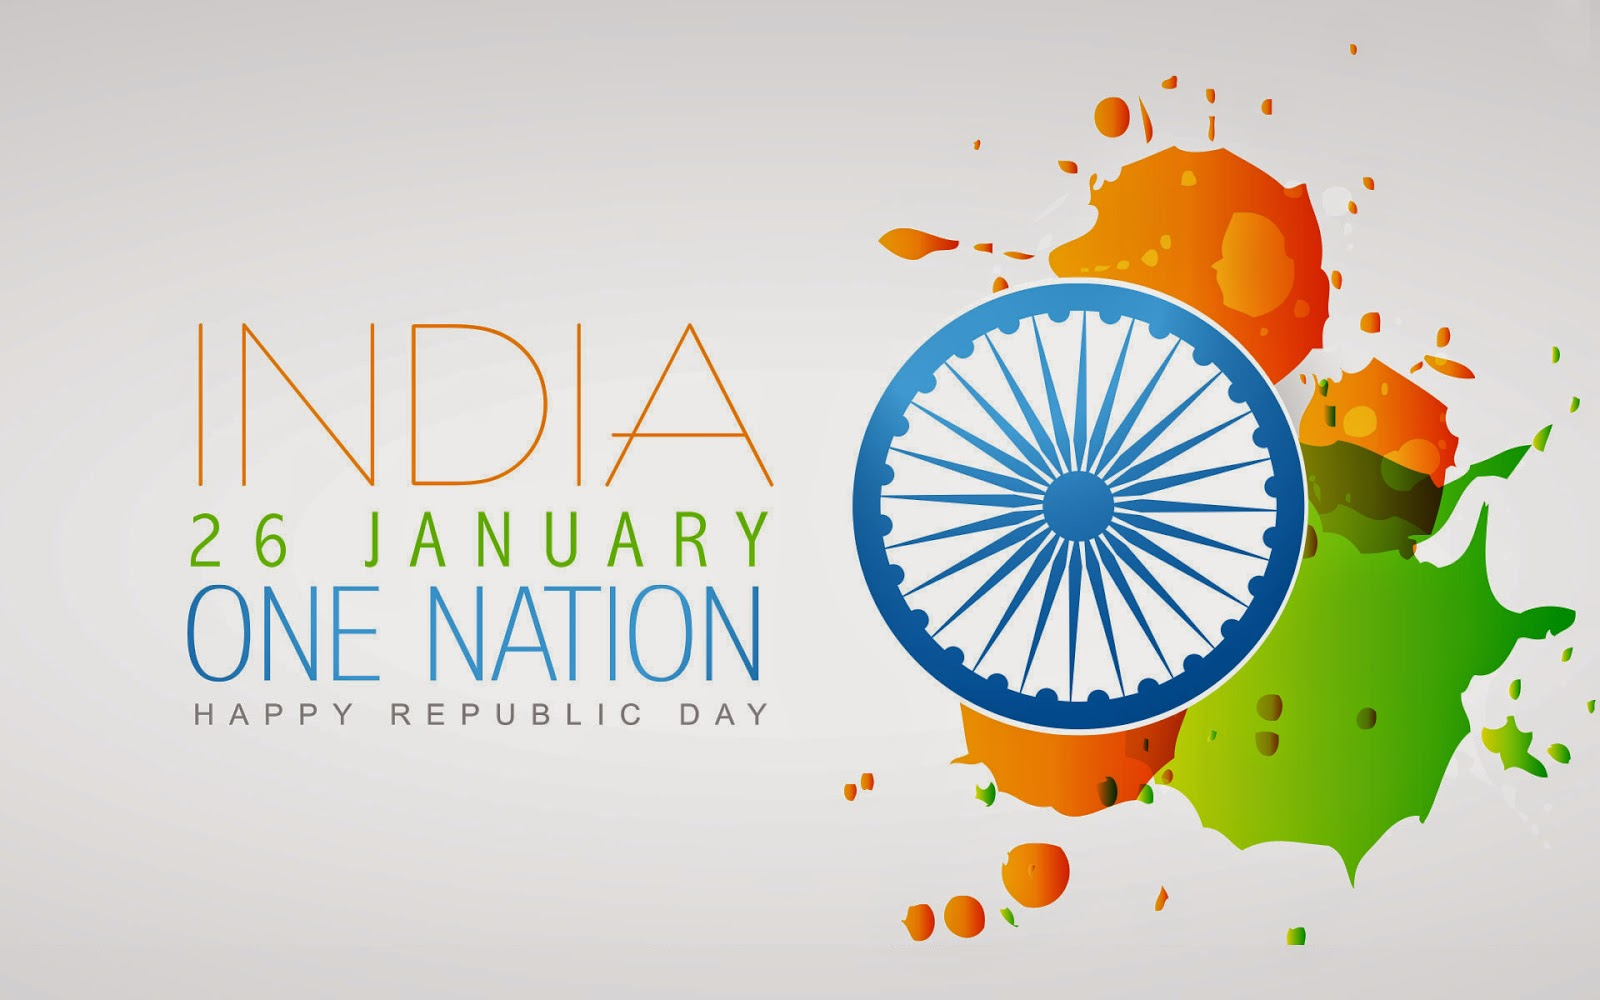 India-Republic-Day-Images-for-Whatsapp-DP-Profile-Wallpapers-Download-7